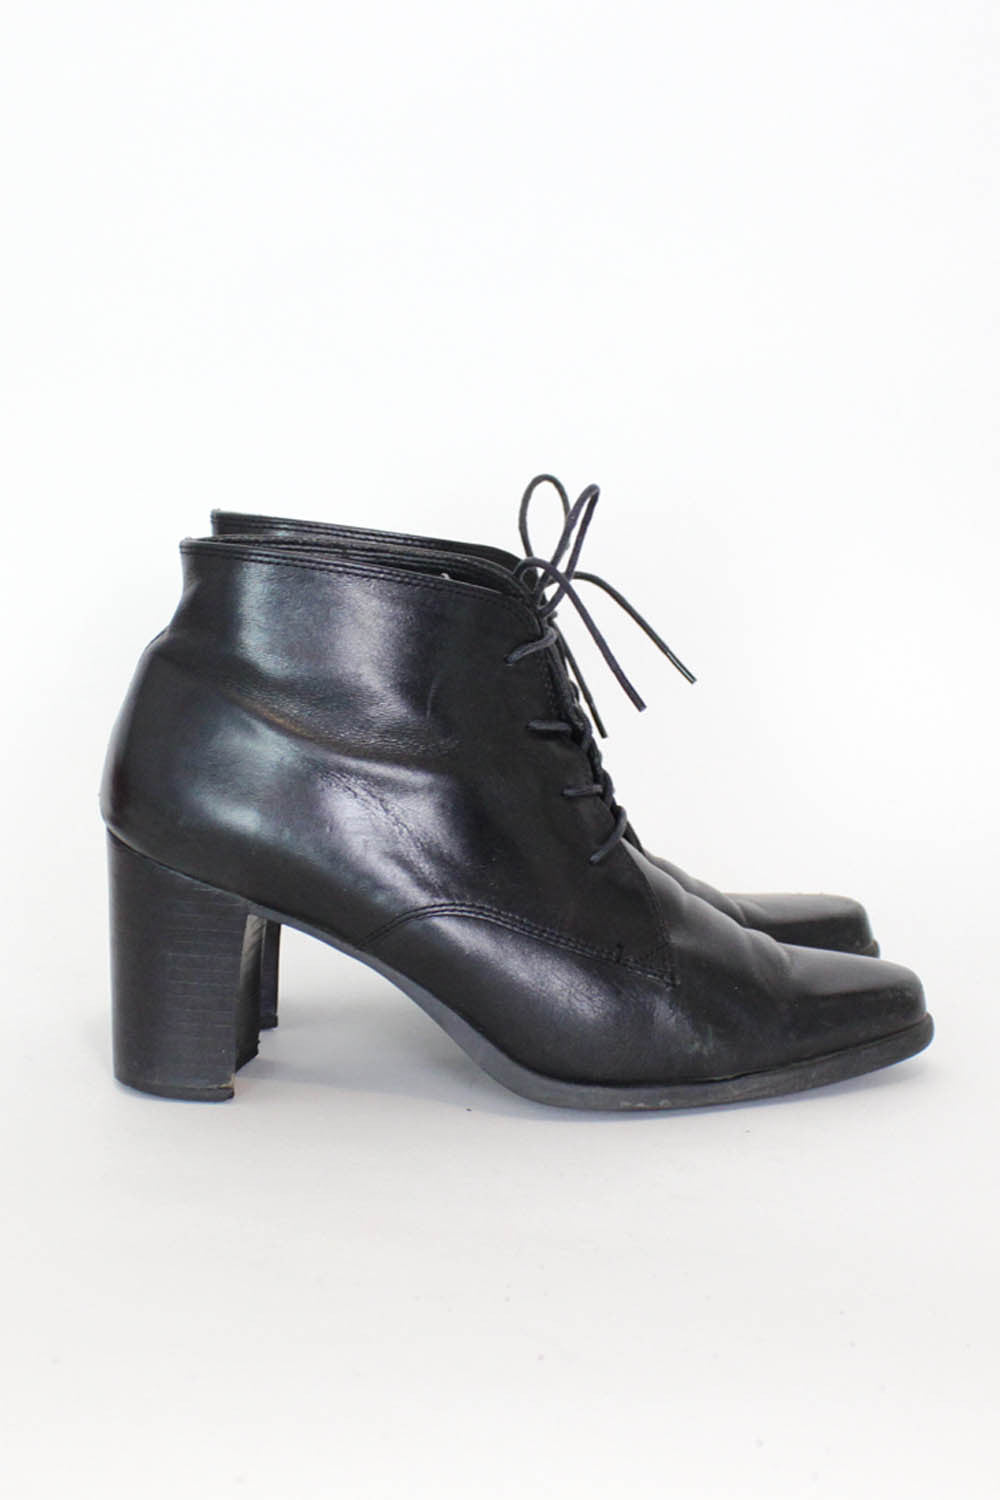 Lace Up Heeled Ankle Boots 7